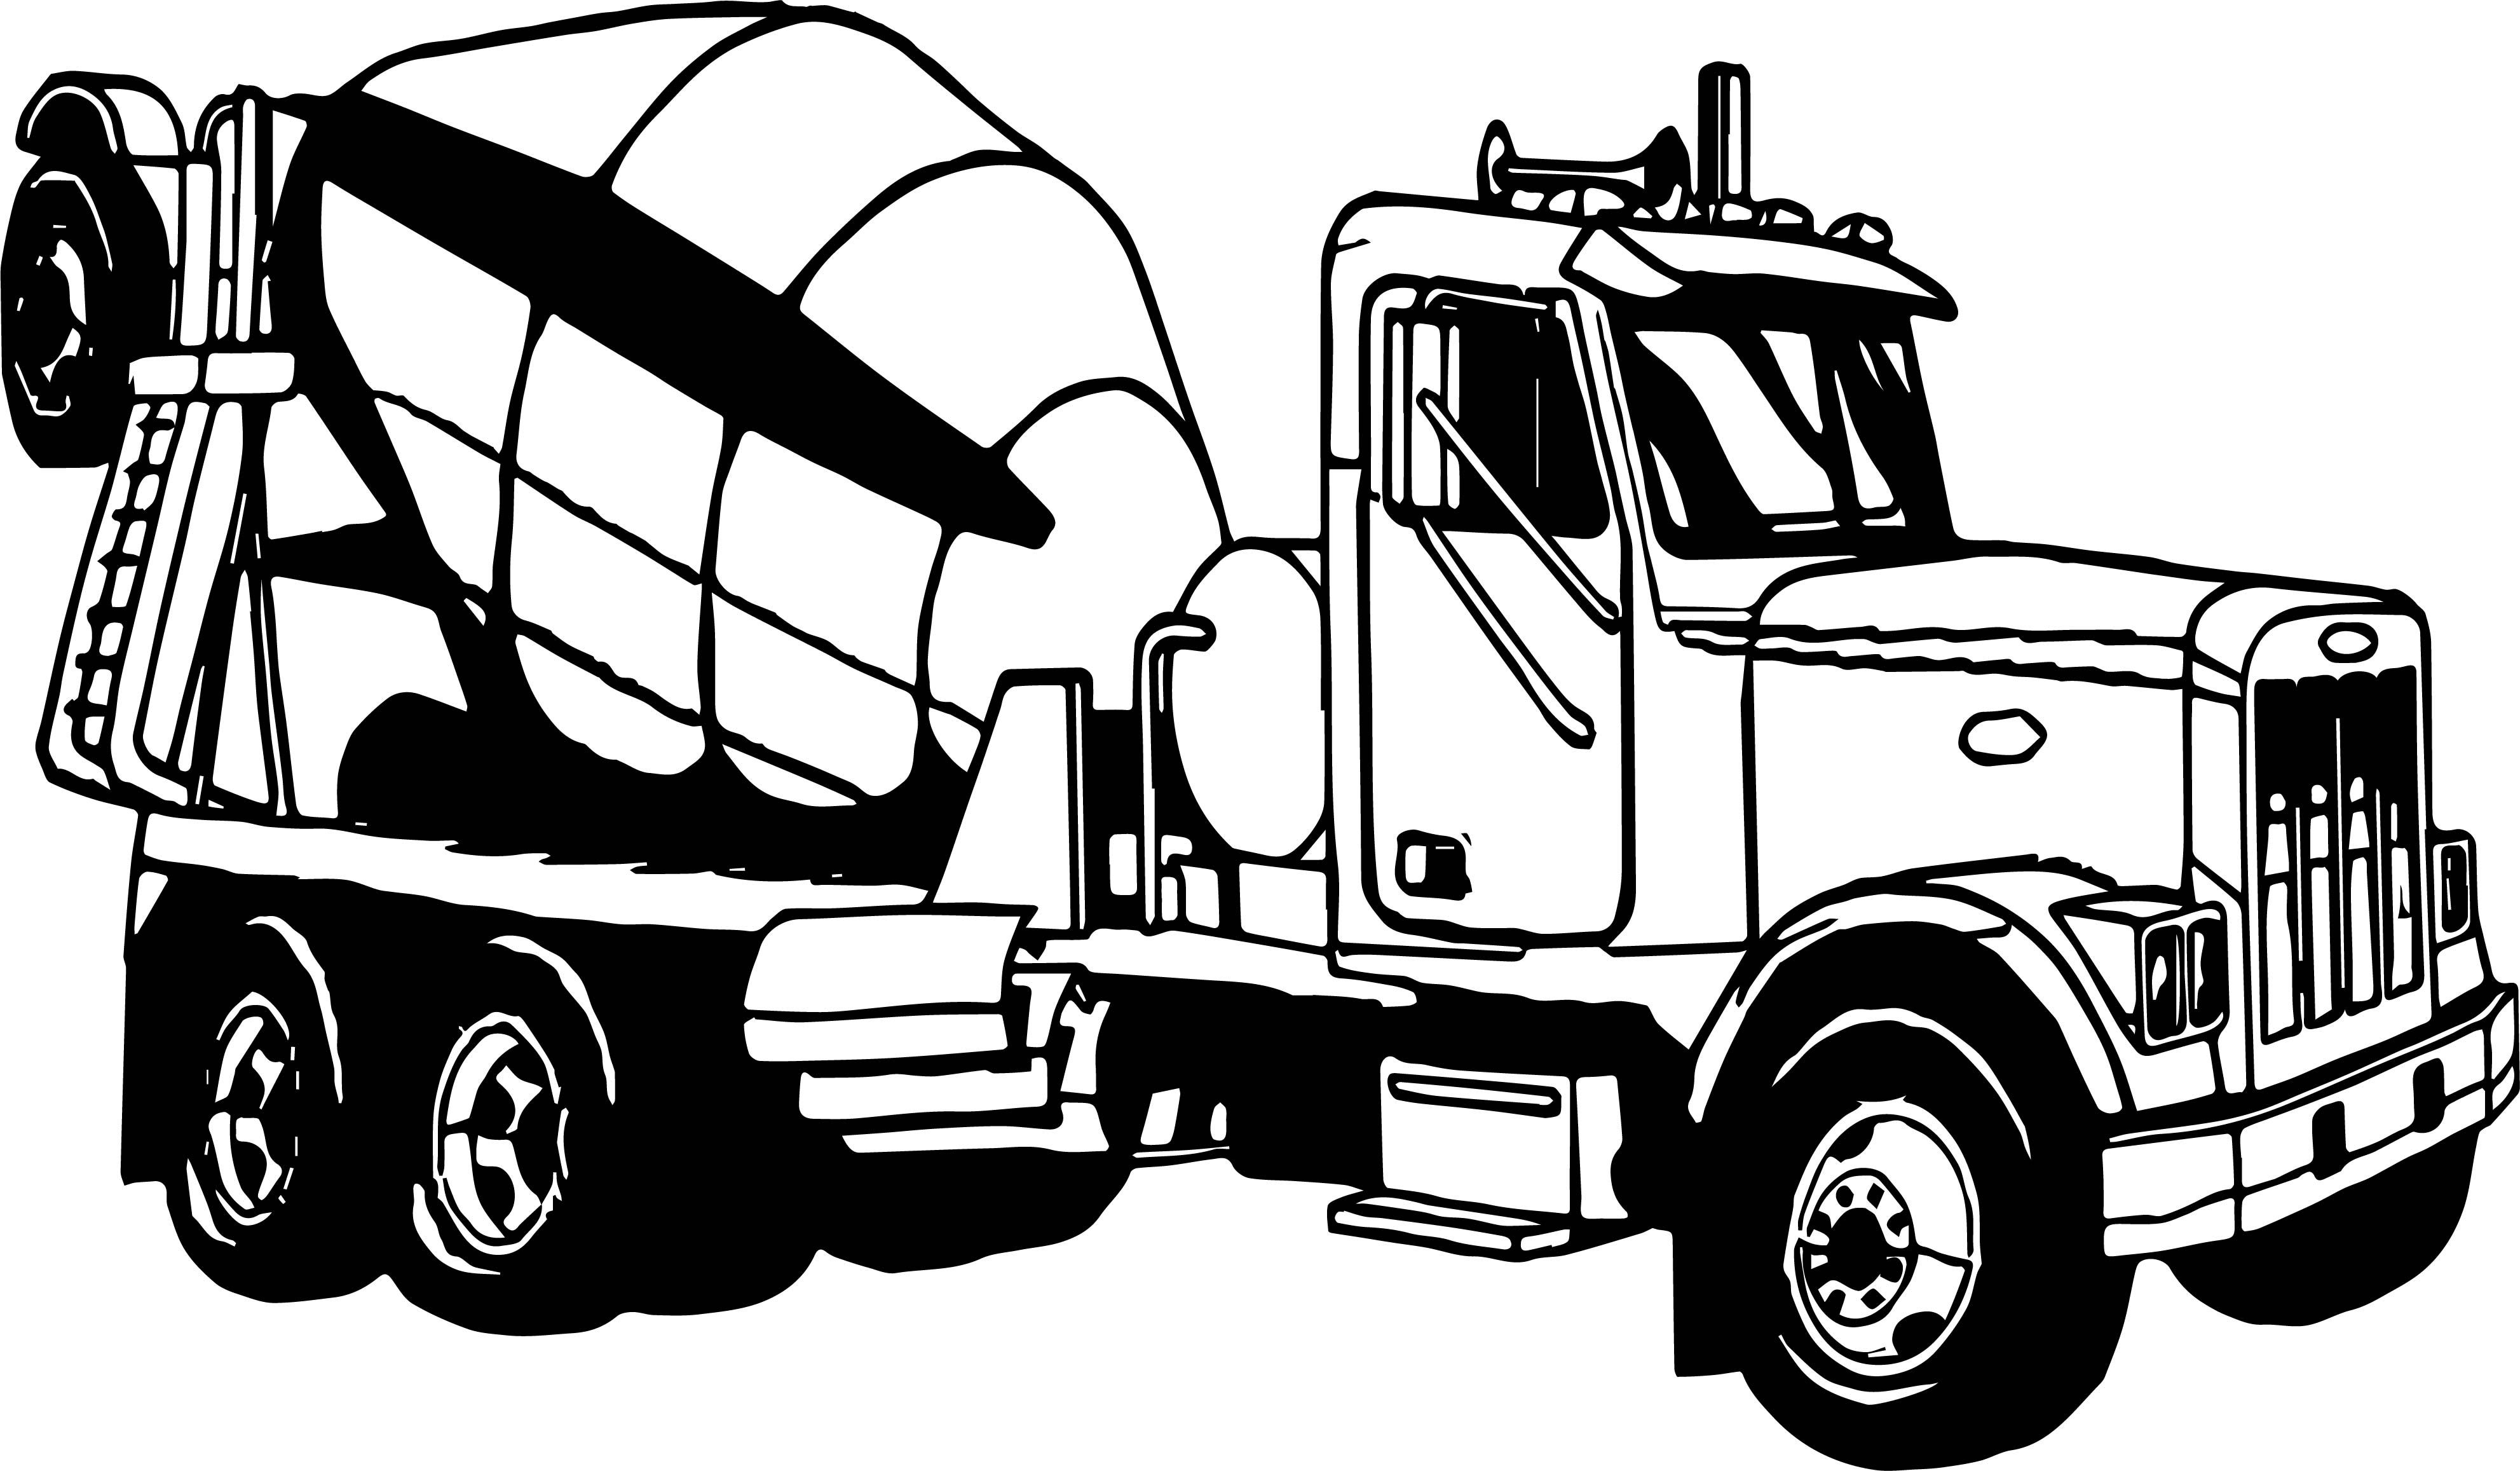 awesome Mixing Big Truck Coloring Page | Big trucks, Truck ...